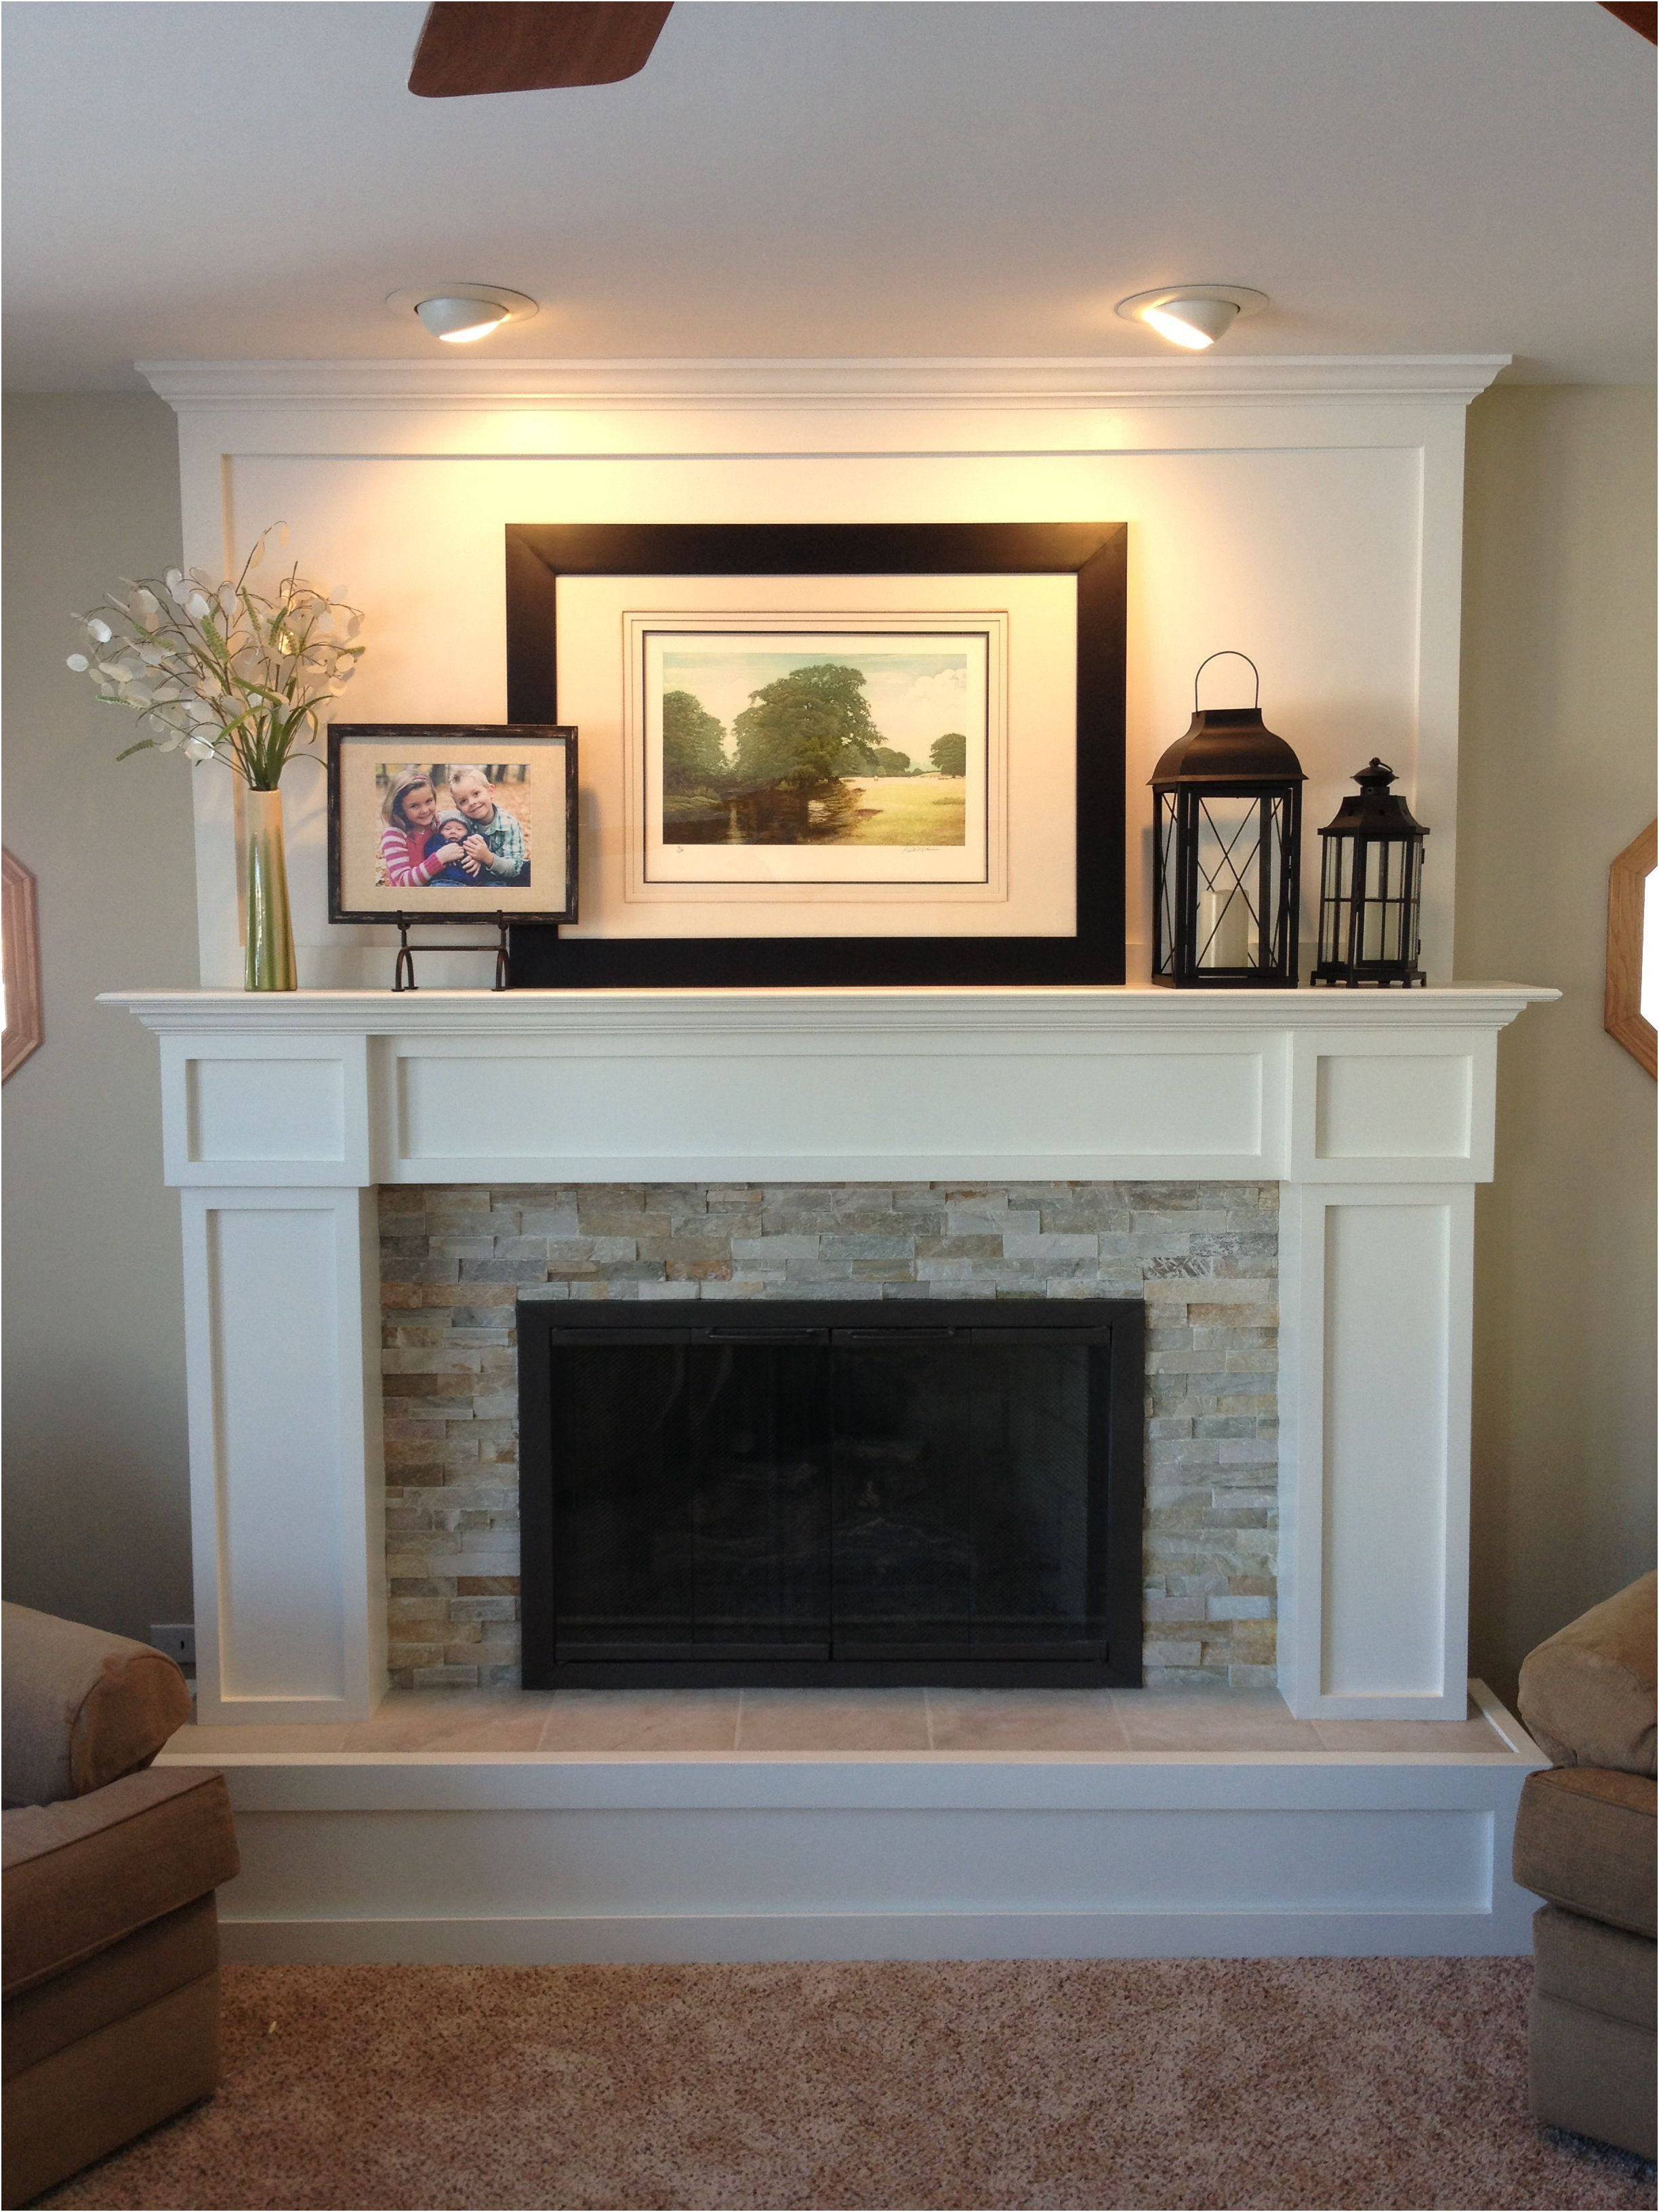 Fresh Fireplace Decorating Ideas